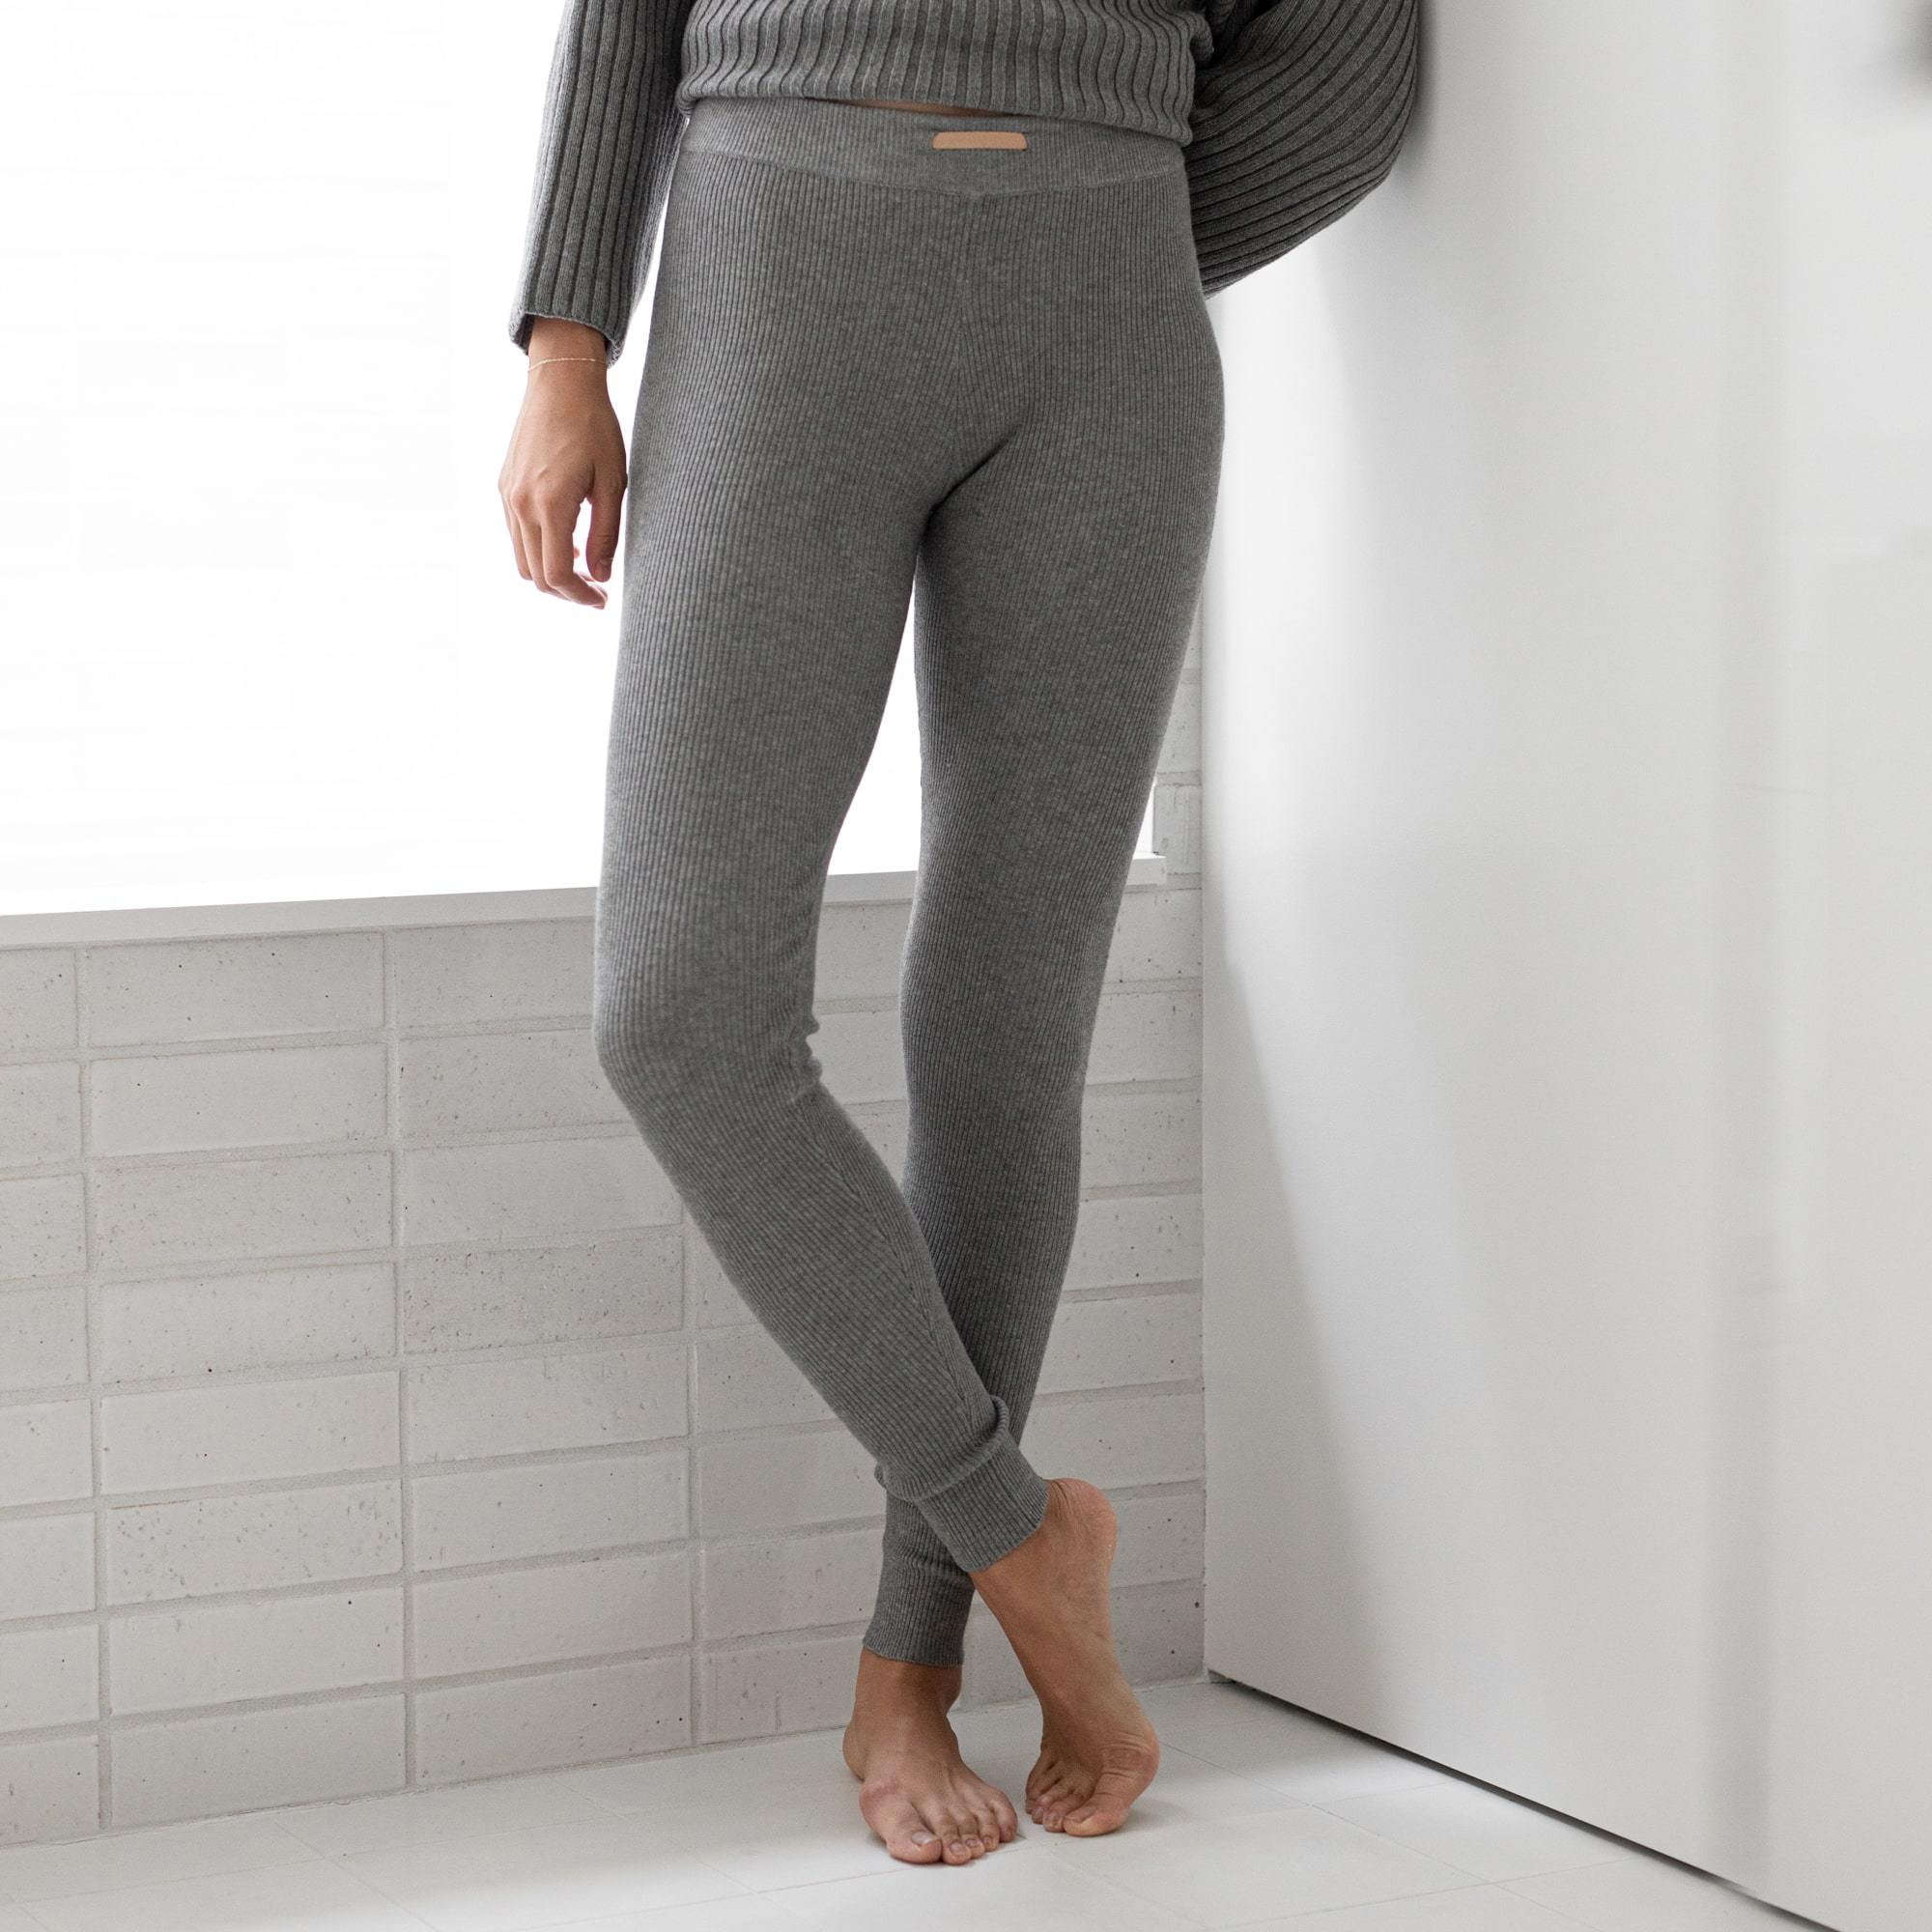 Lunya Sleepwear Cozy Pima Alpaca Ribbed Legging - #Heather Grey